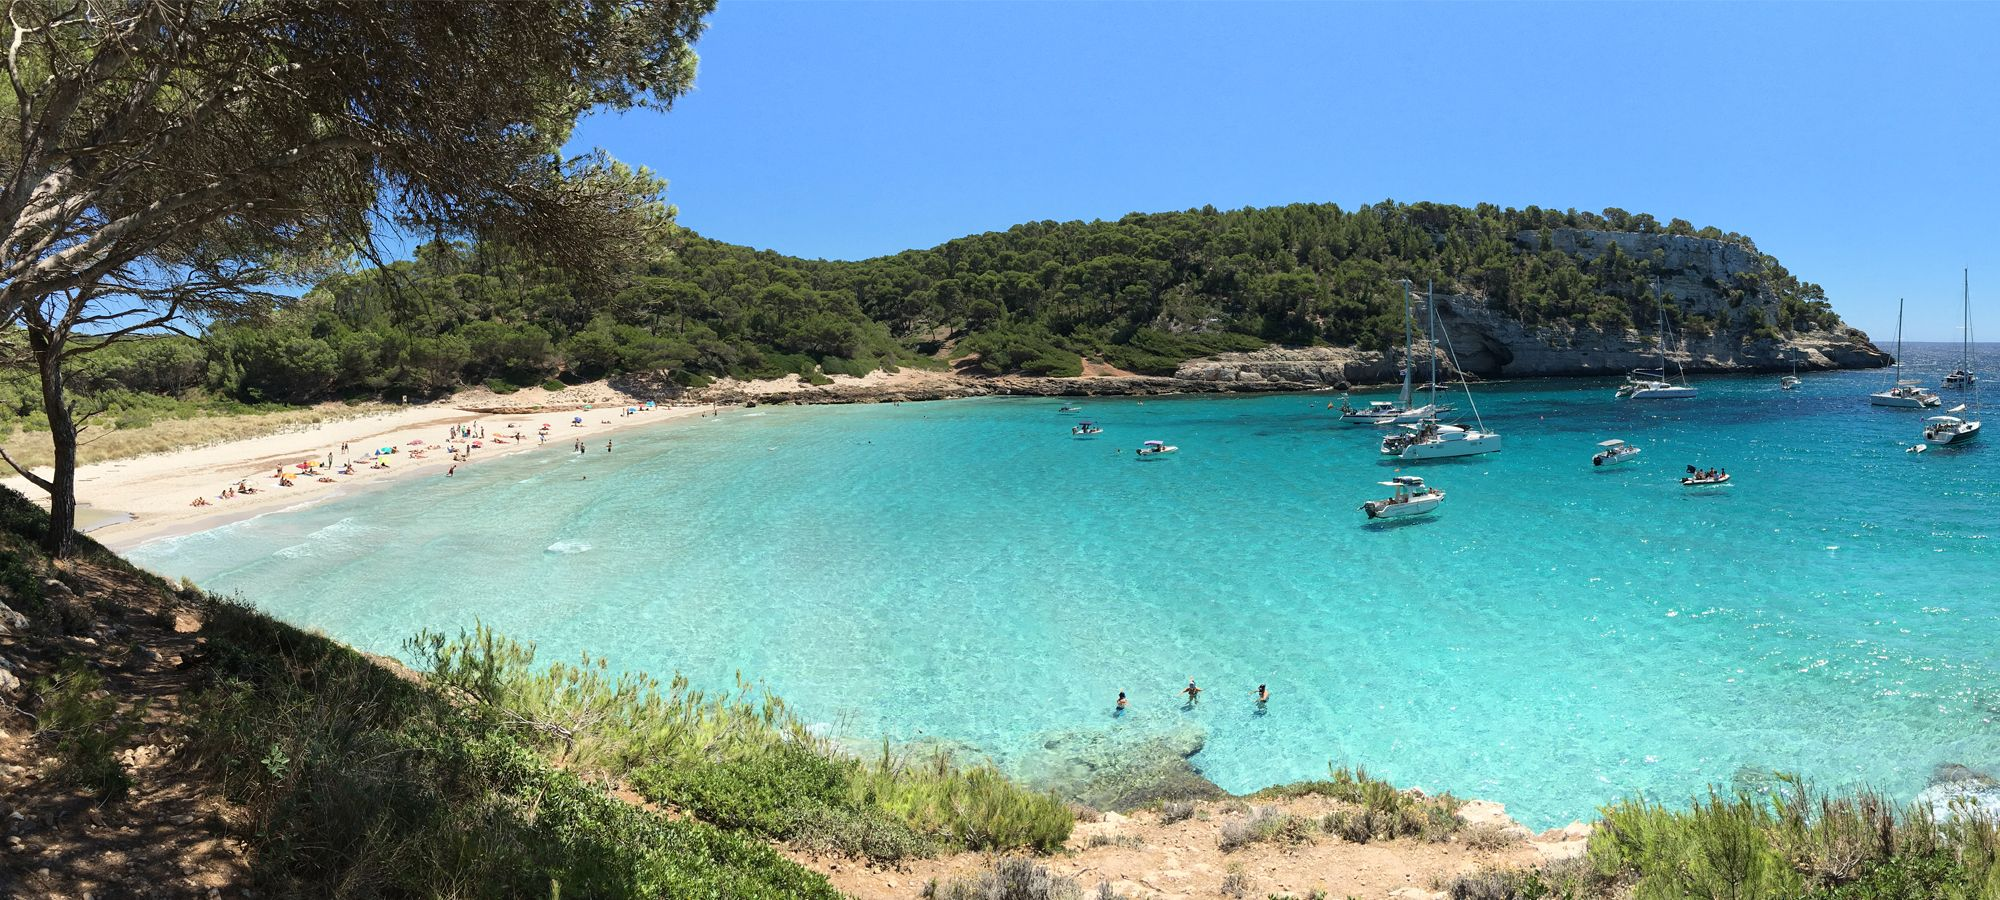 Menorca Beaches A Guide To The Best Beaches On Menorca